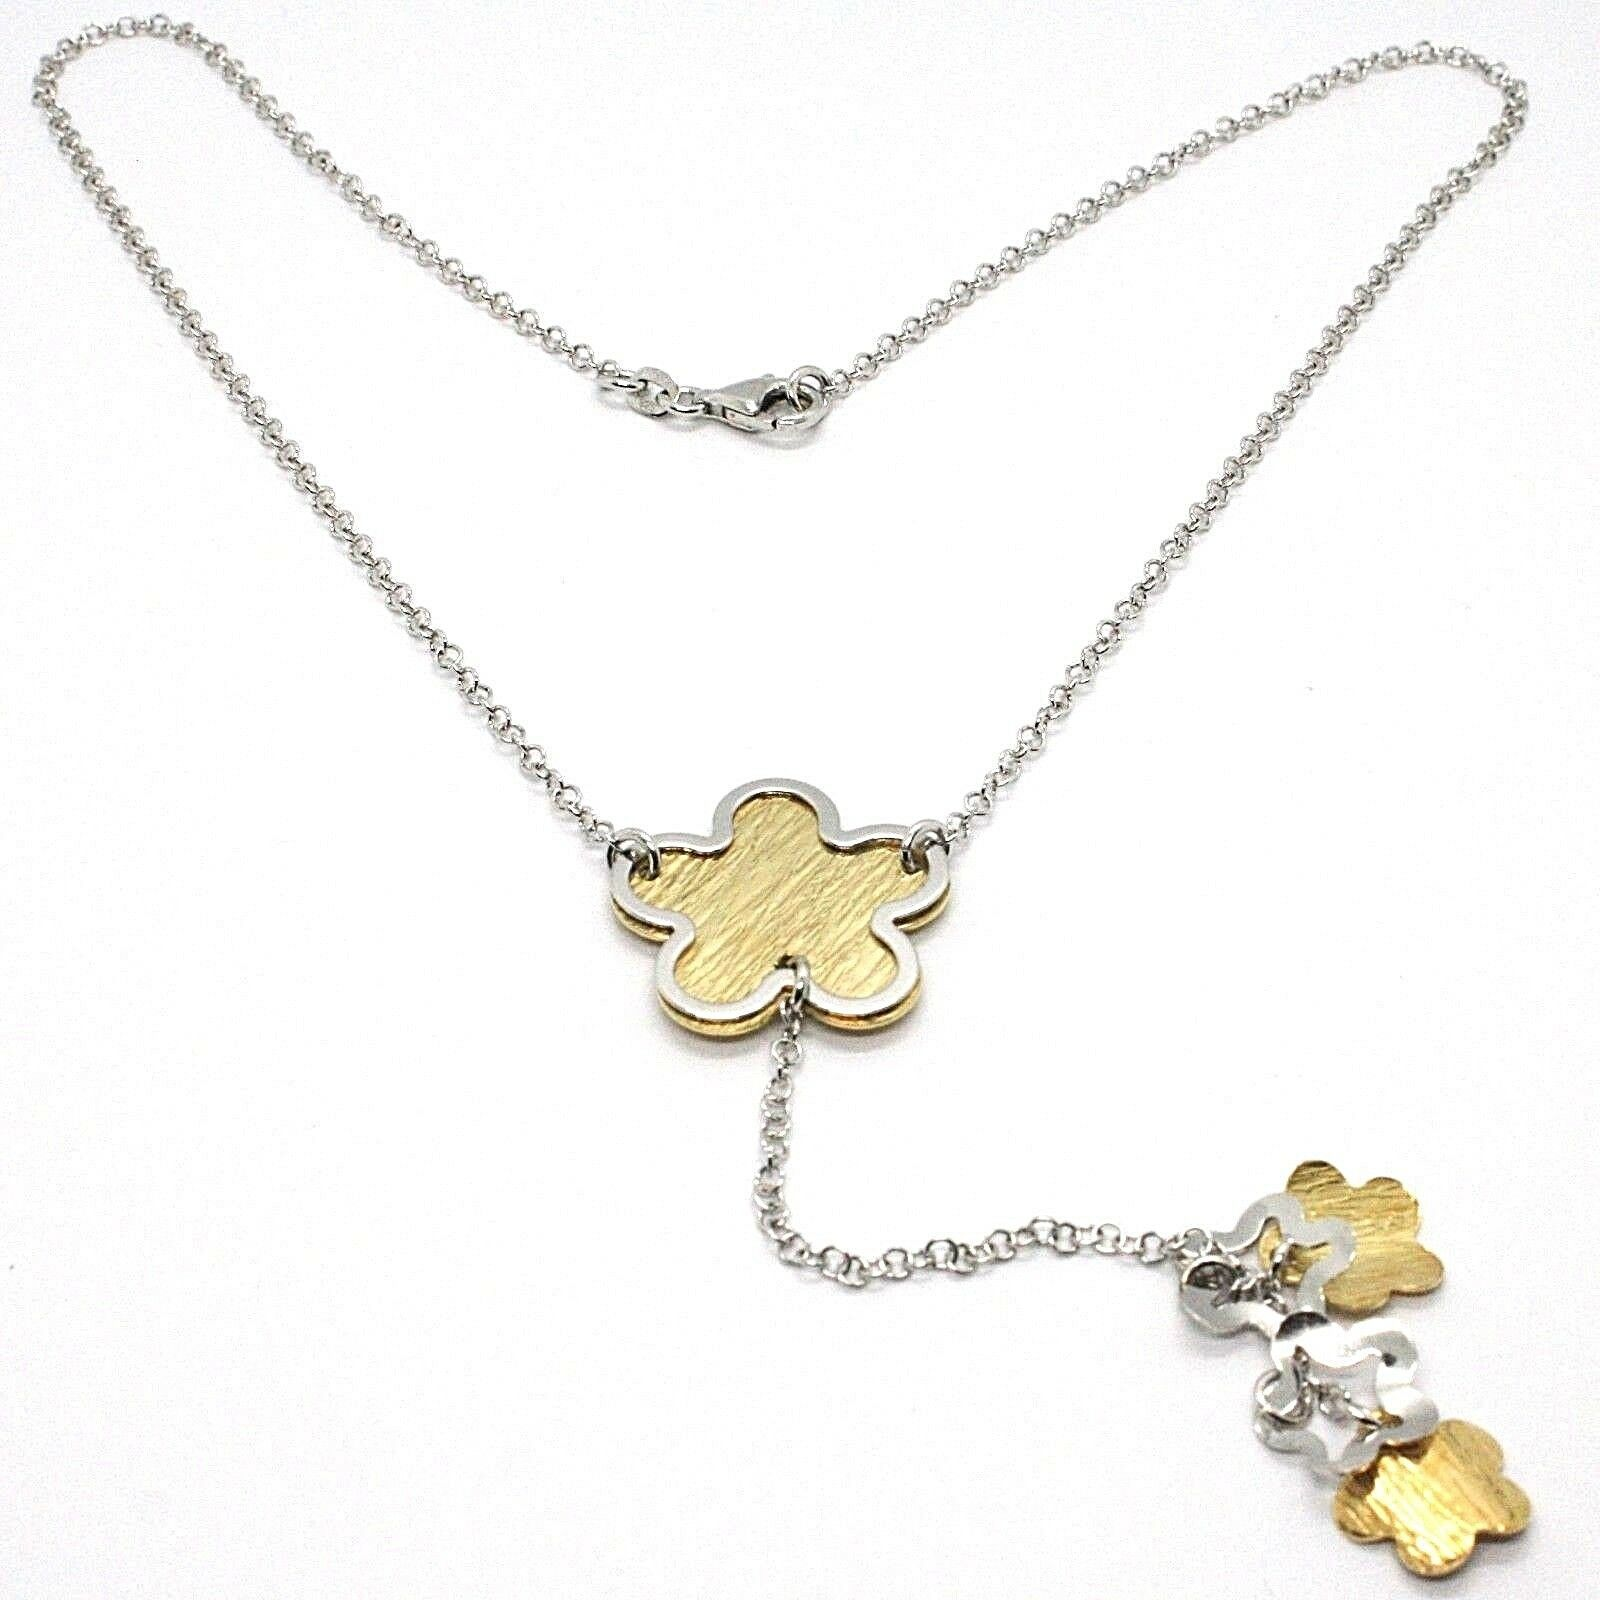 Silver 925 Necklace Rolo Chain, Flower, Daisy Pendants, Tone